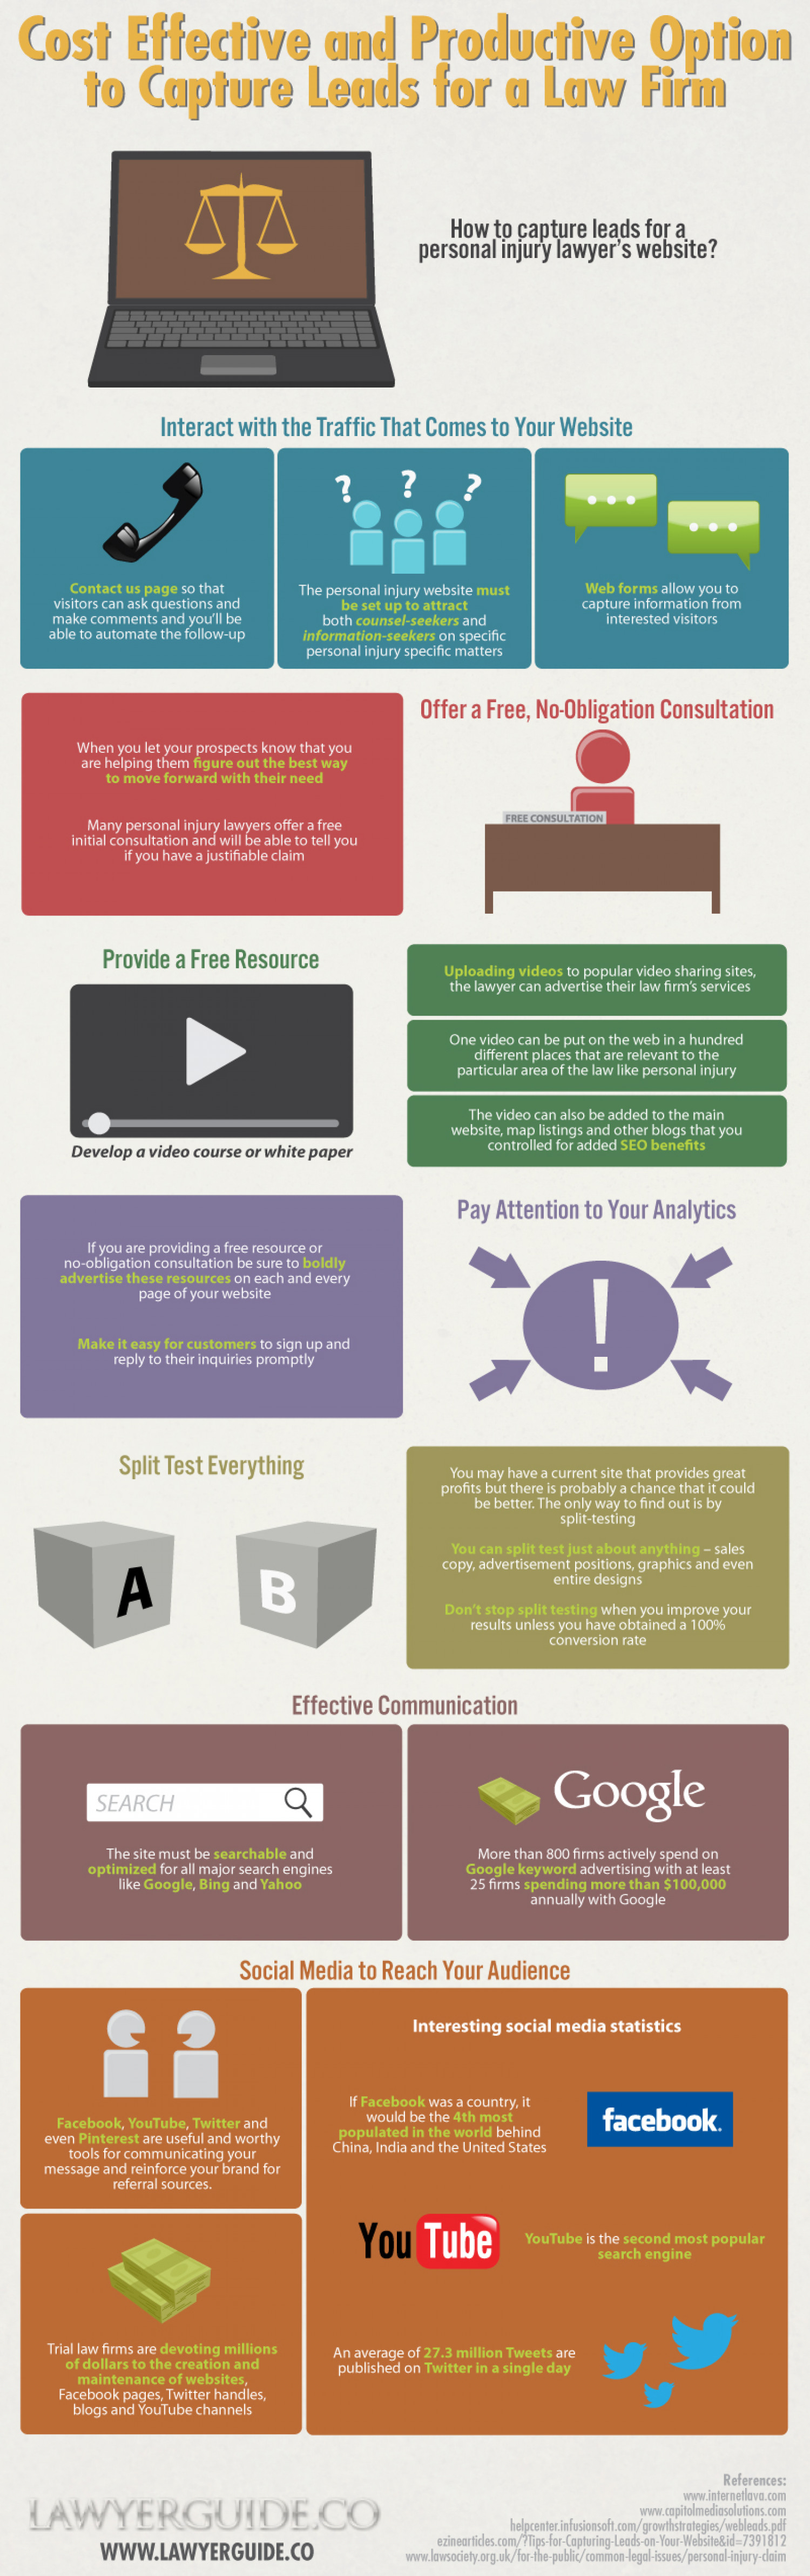 Cost Effective and Productive Option to Capture Leads for a Law Firm Infographic